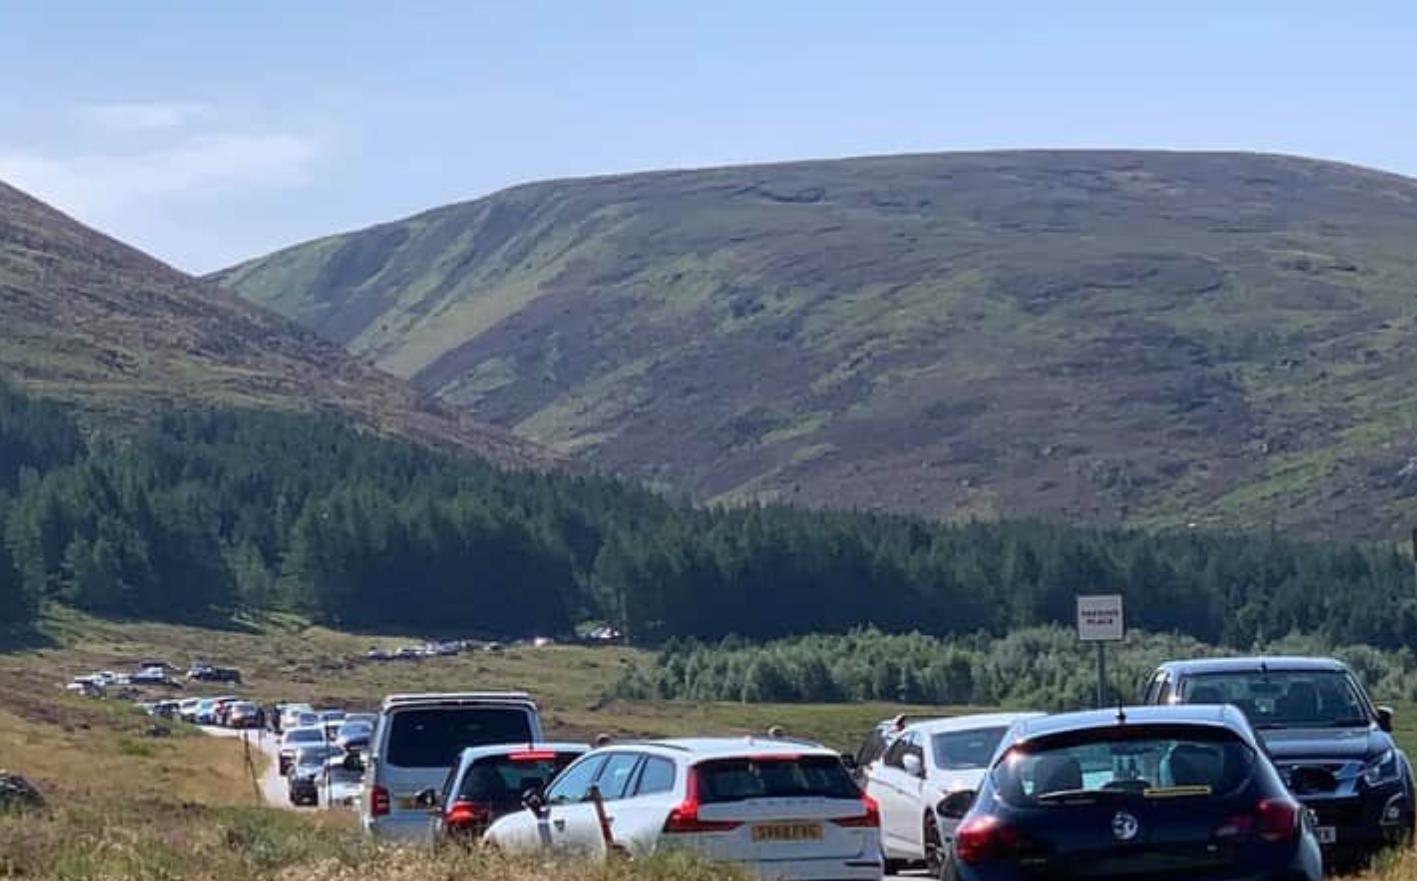 Loch Muick car park has been plagued by irresponsible parking in recent months.